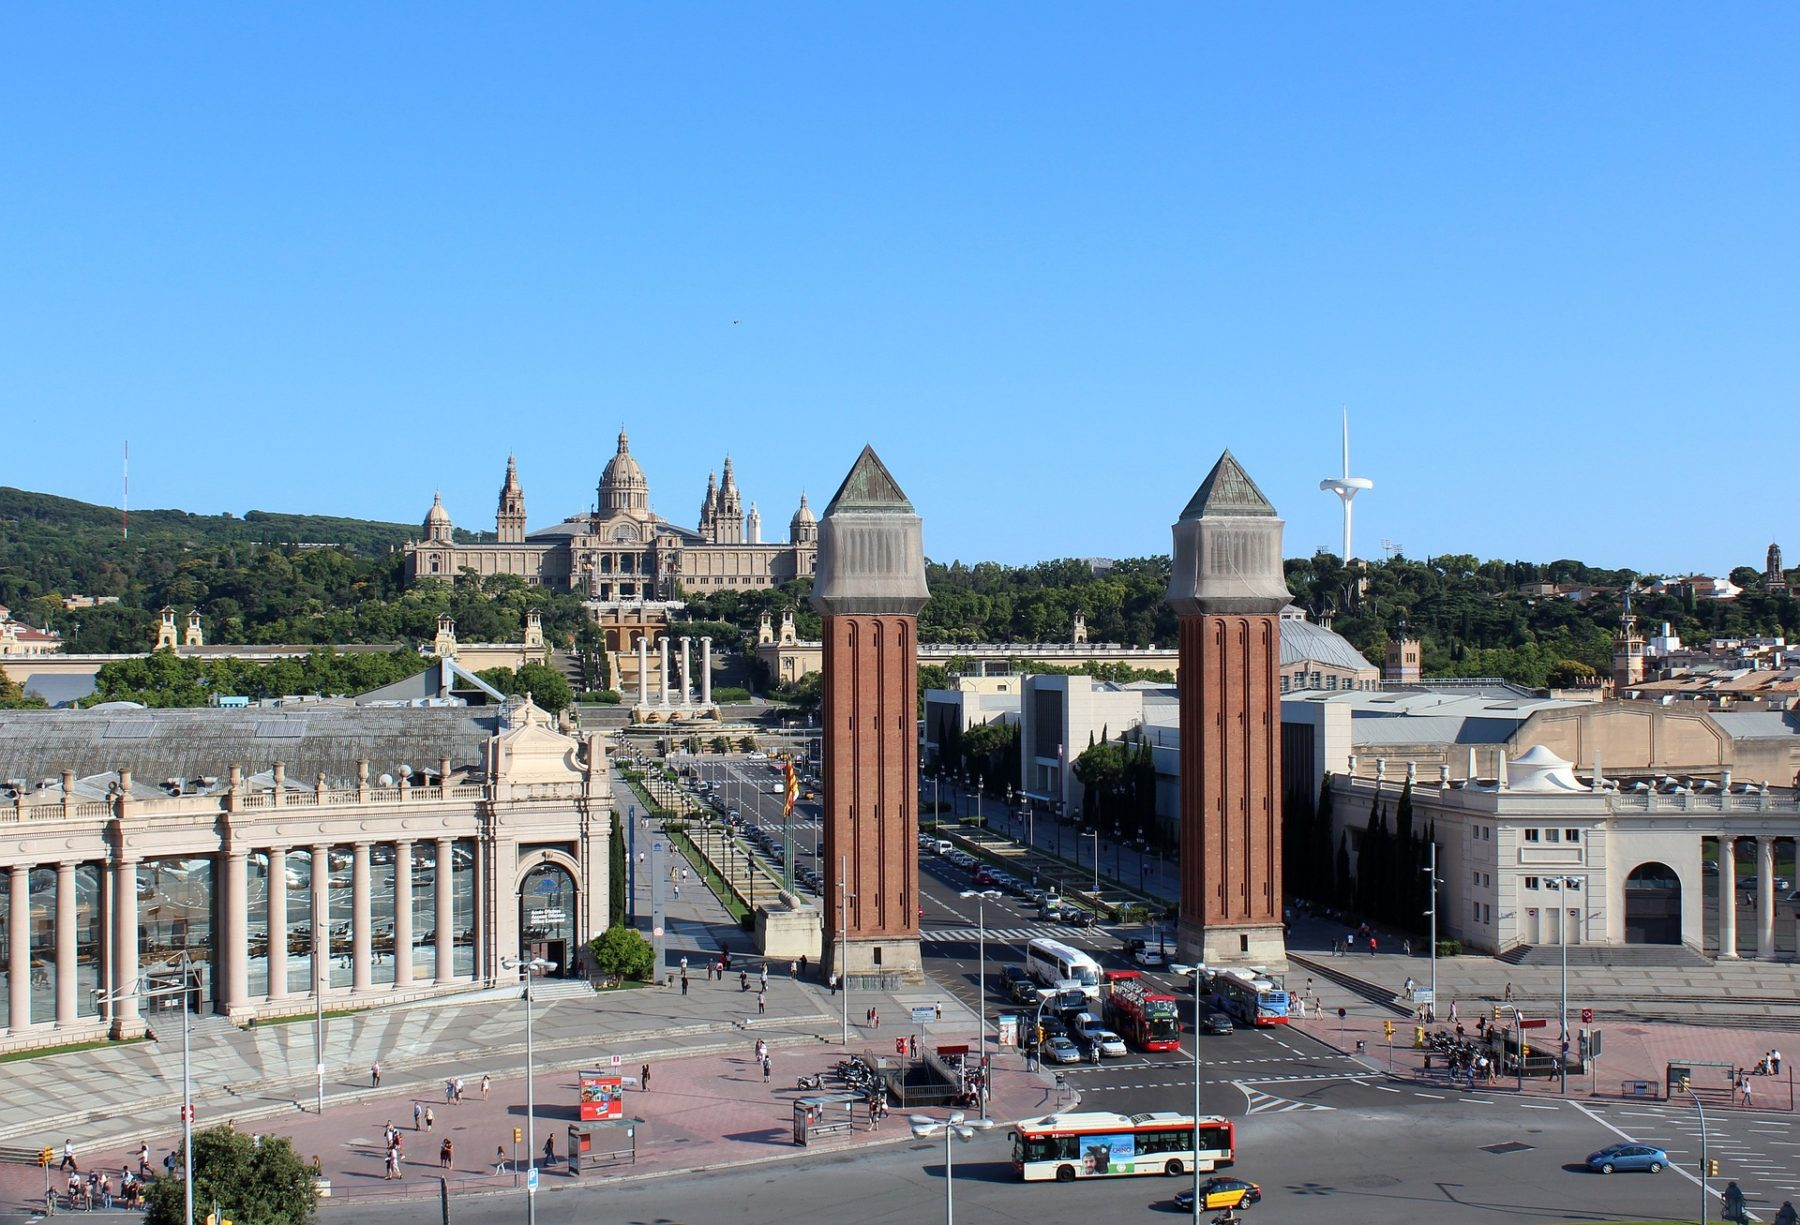 Sights and attractions in Barcelona